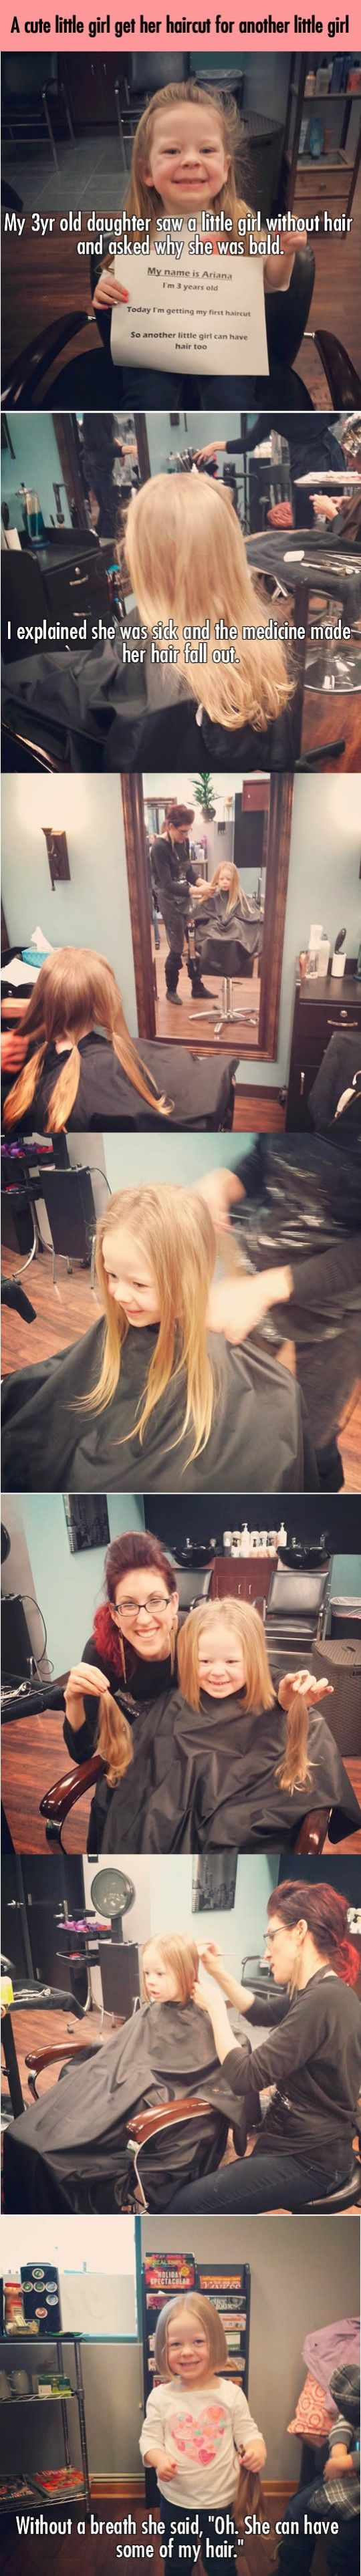 A story that's going to warm your heart for a while in this cold winter.